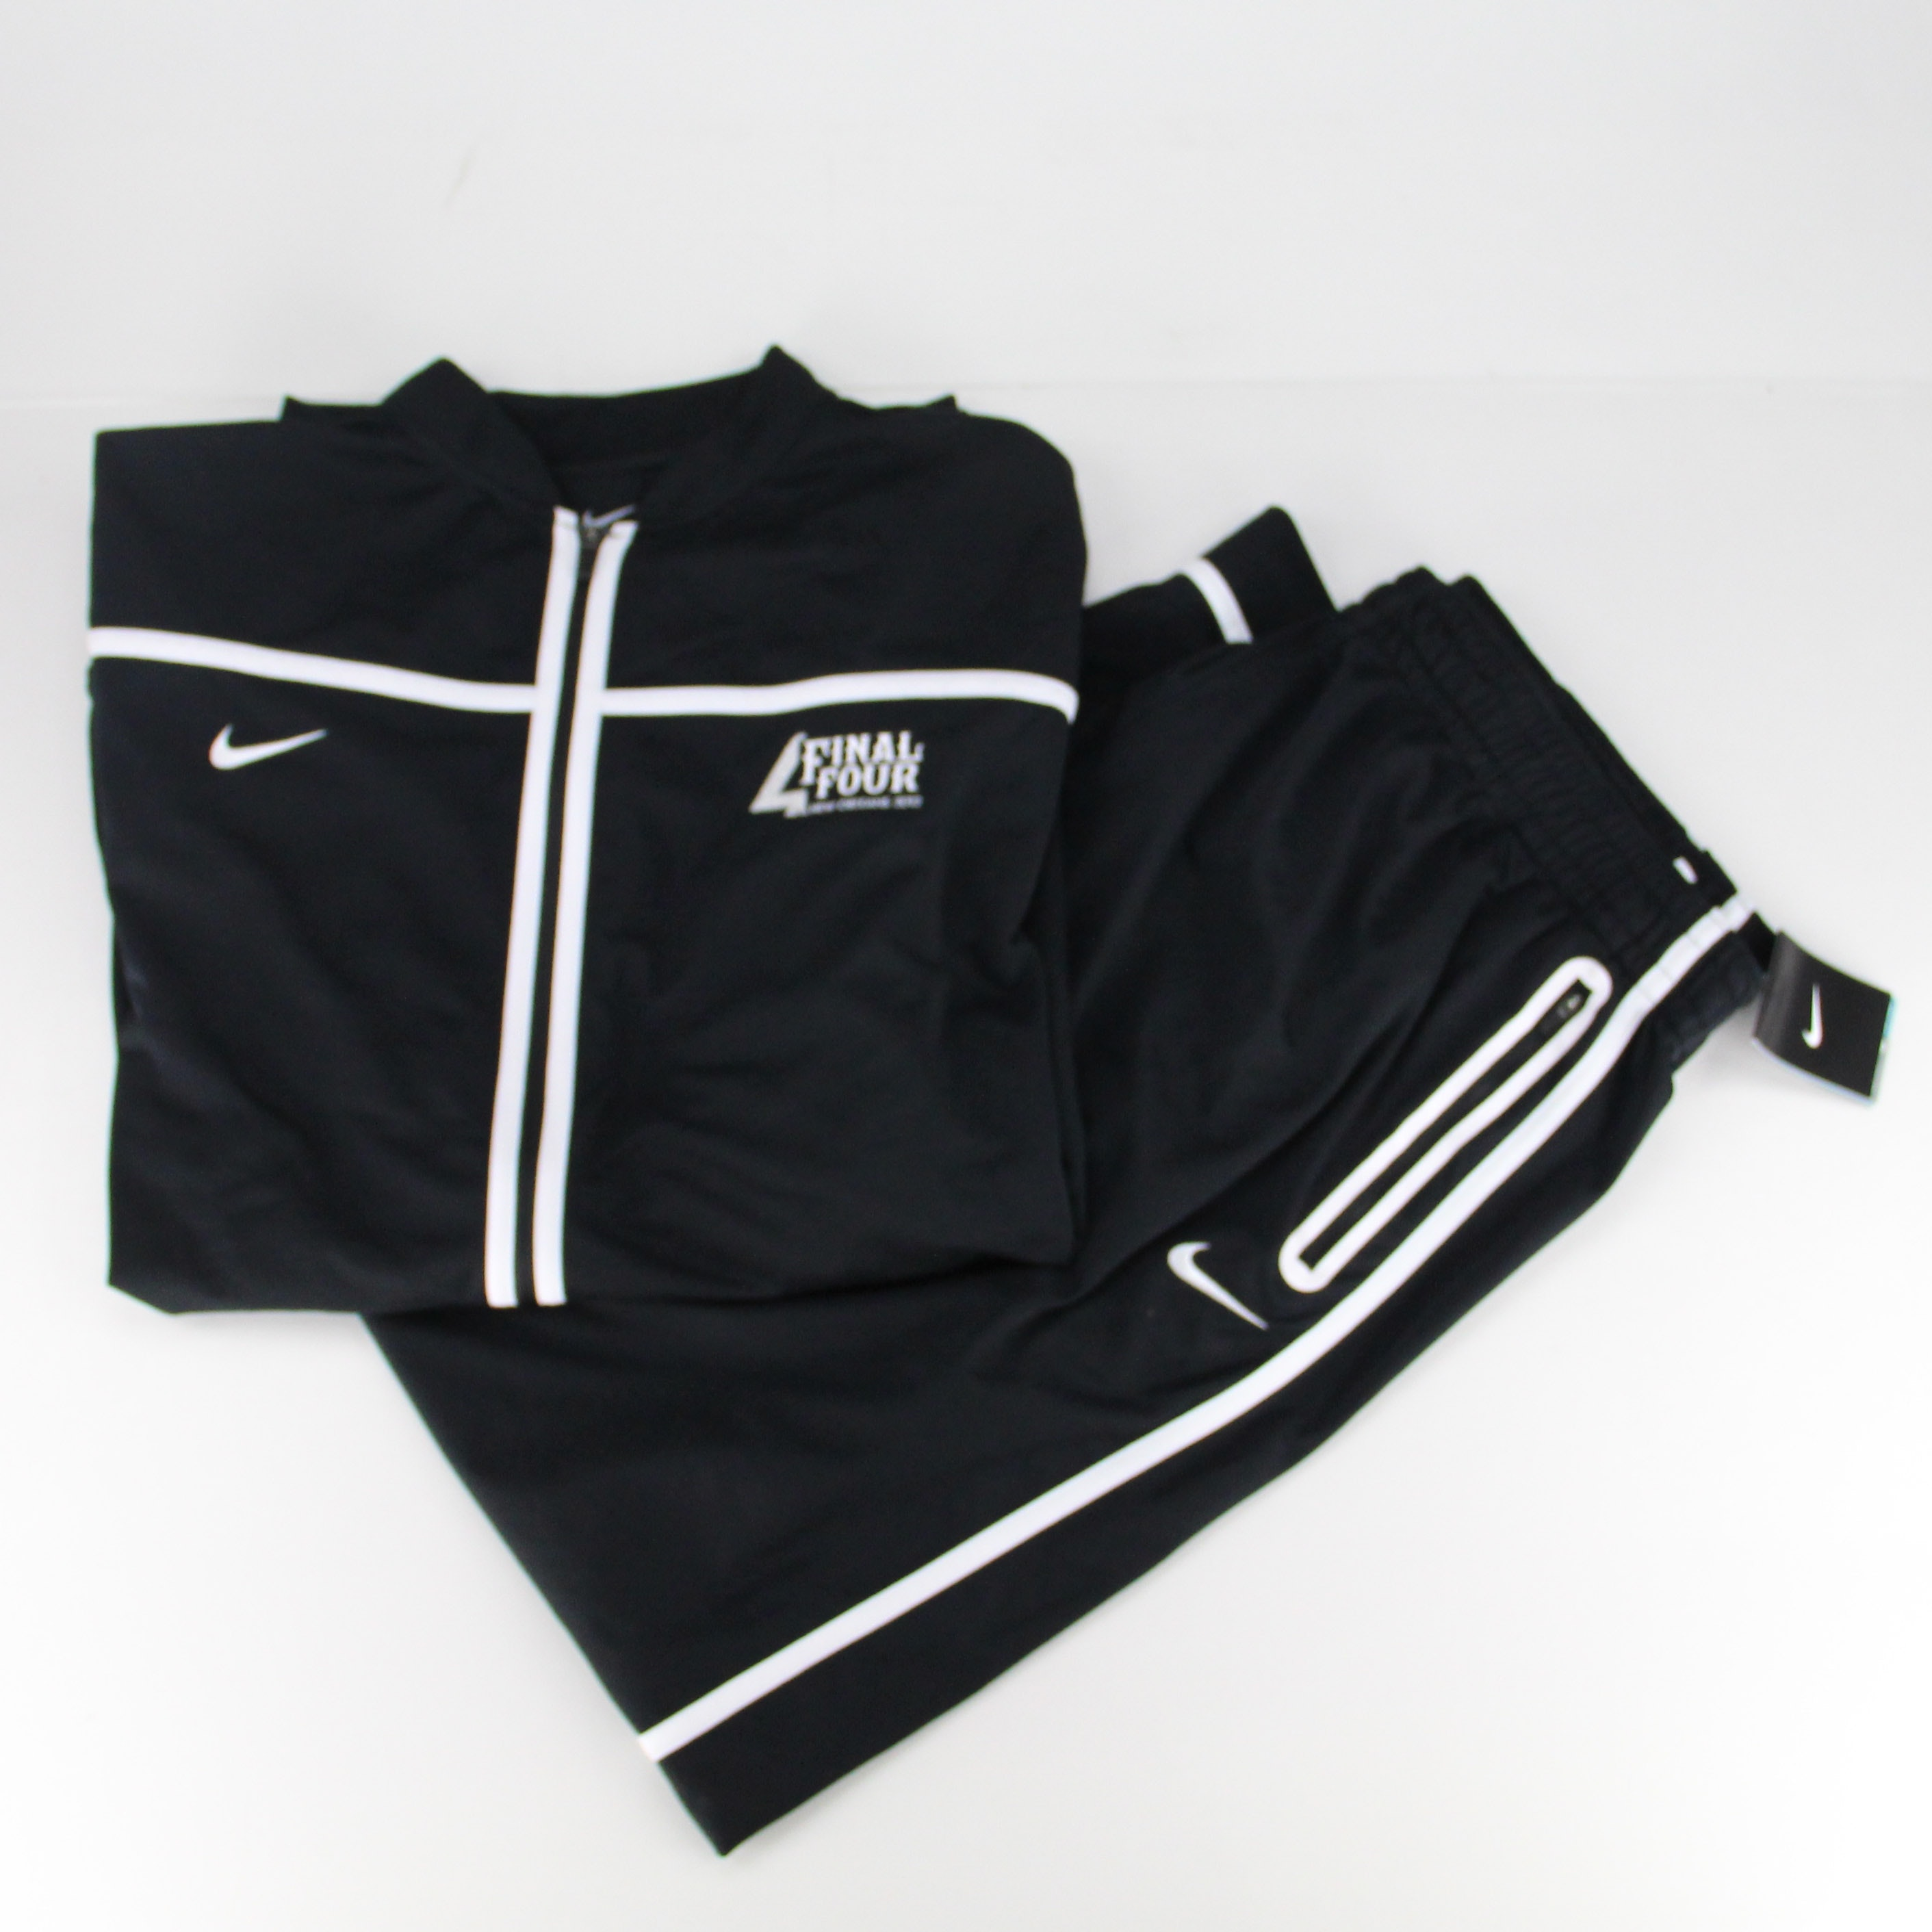 Matching 4XL Final Four Zip Up Jackets and Pants